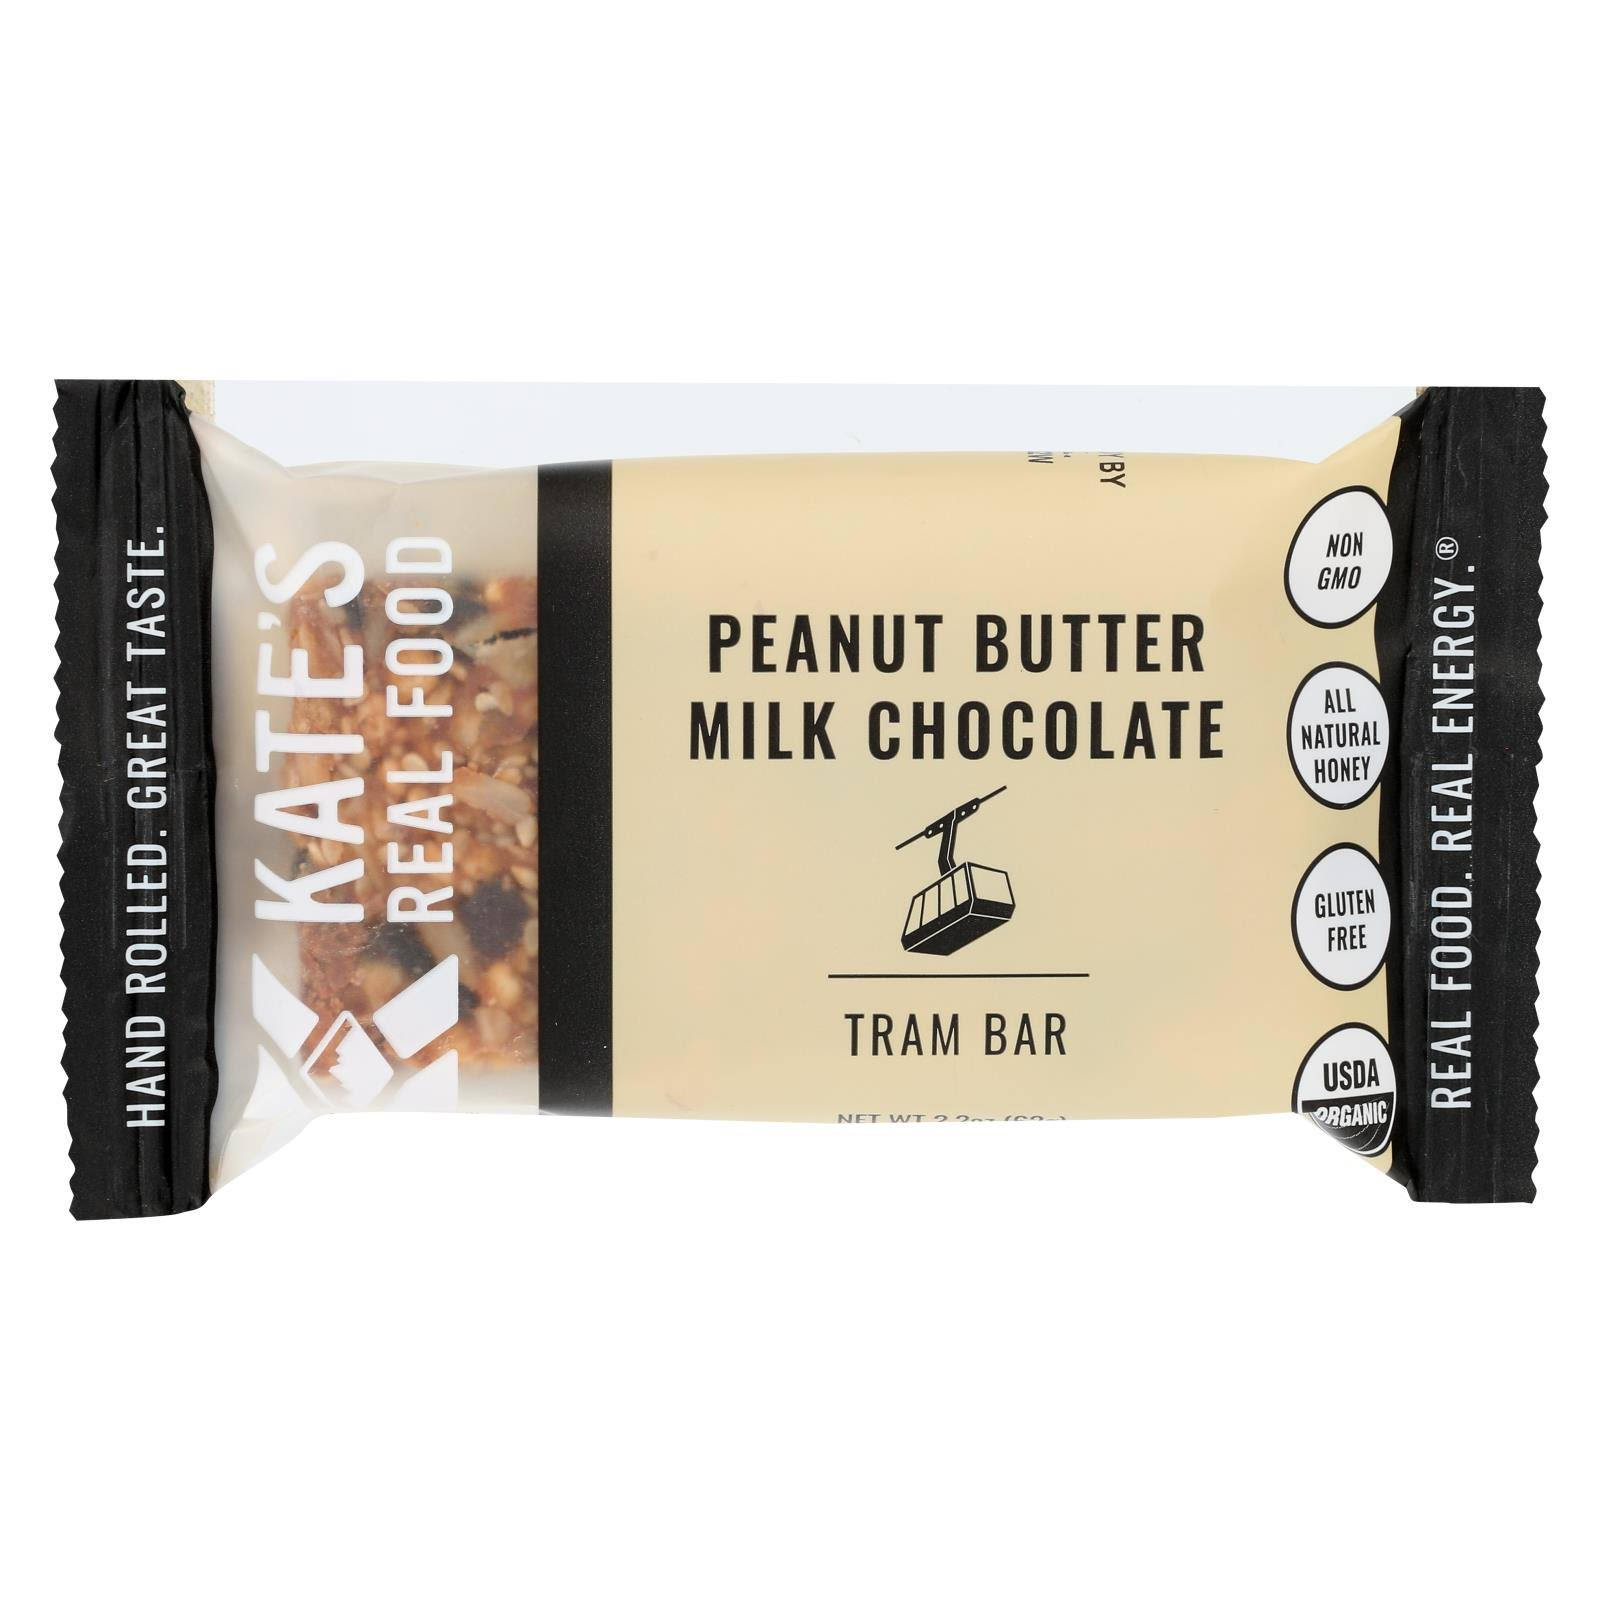 Kate's Real Food Tram Bar, Peanut Butter Milk Chocolate - 2.2 oz